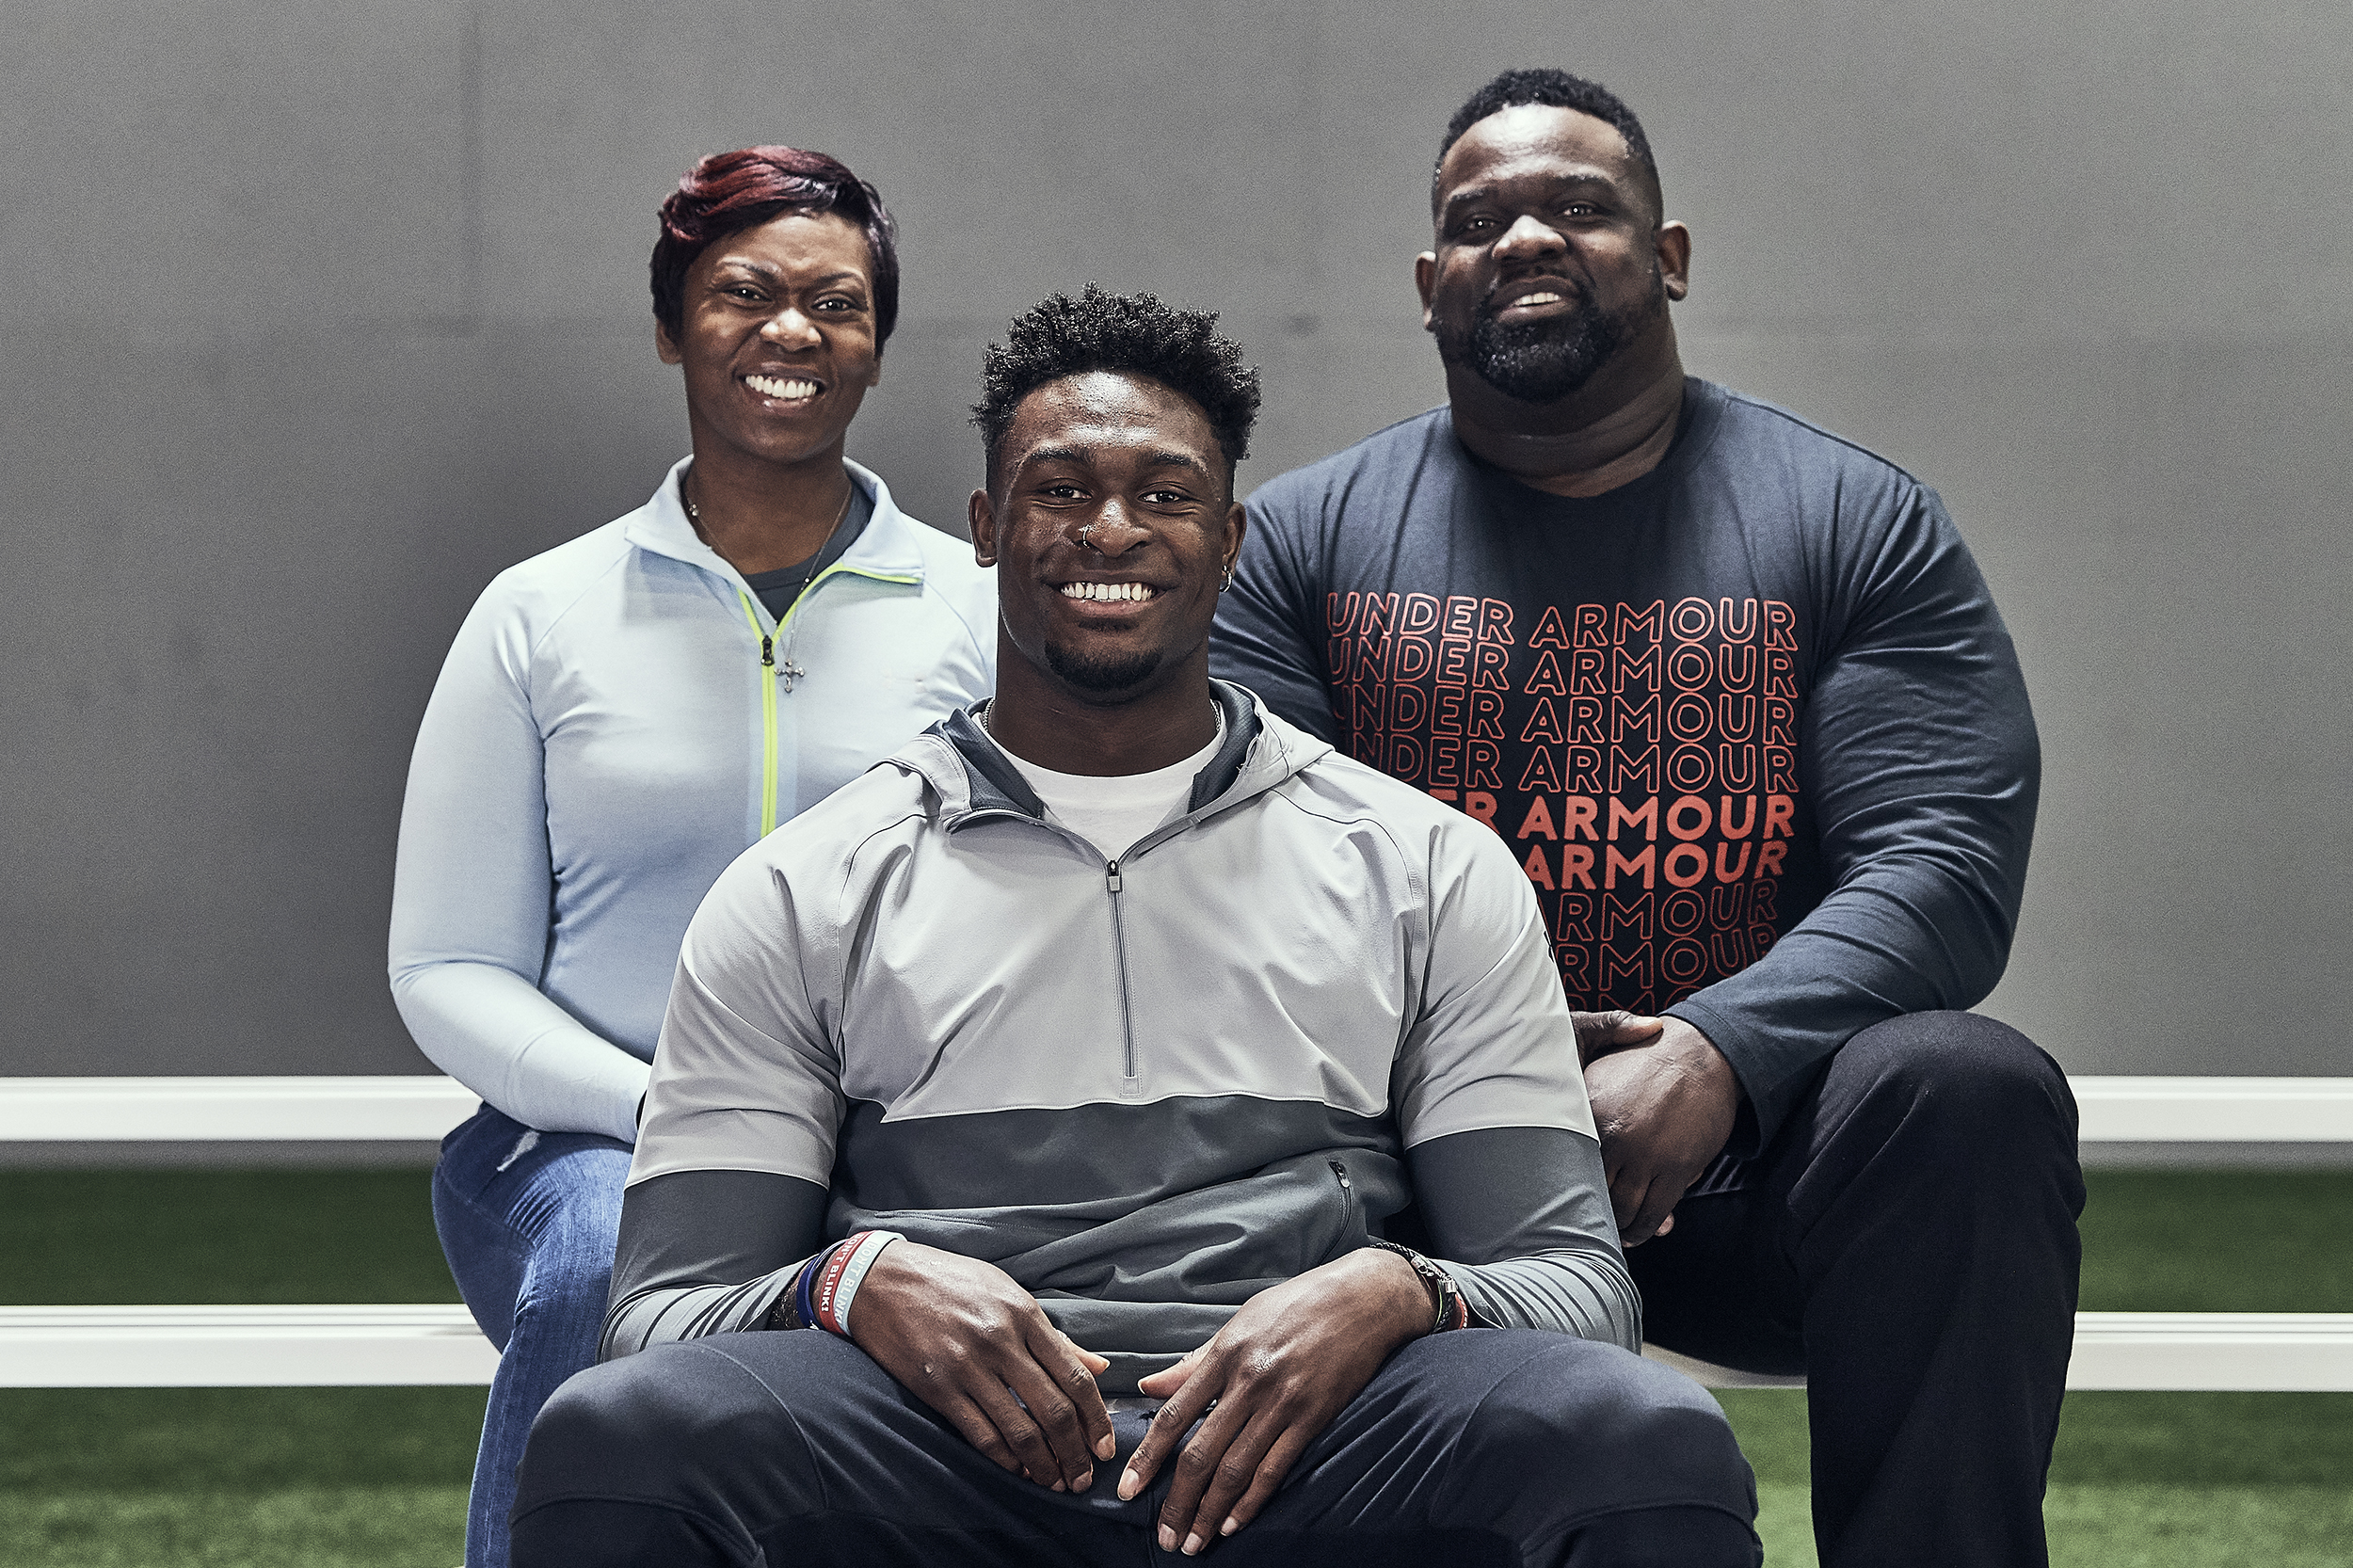 D K Metcalf Joins Under Armour 2019 Ua Newsroom